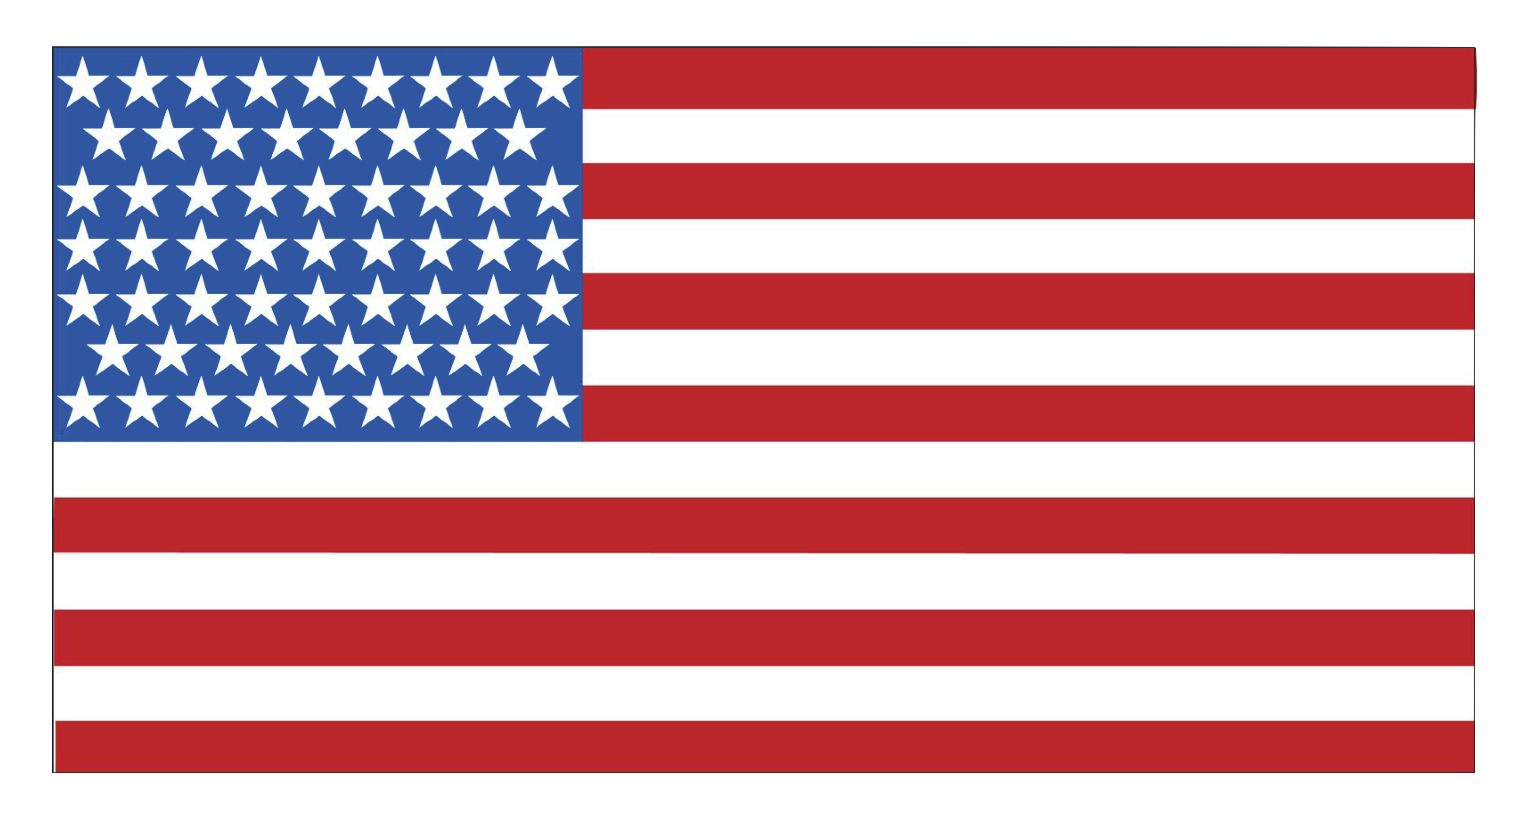 American Flag clipart #14, Download drawings